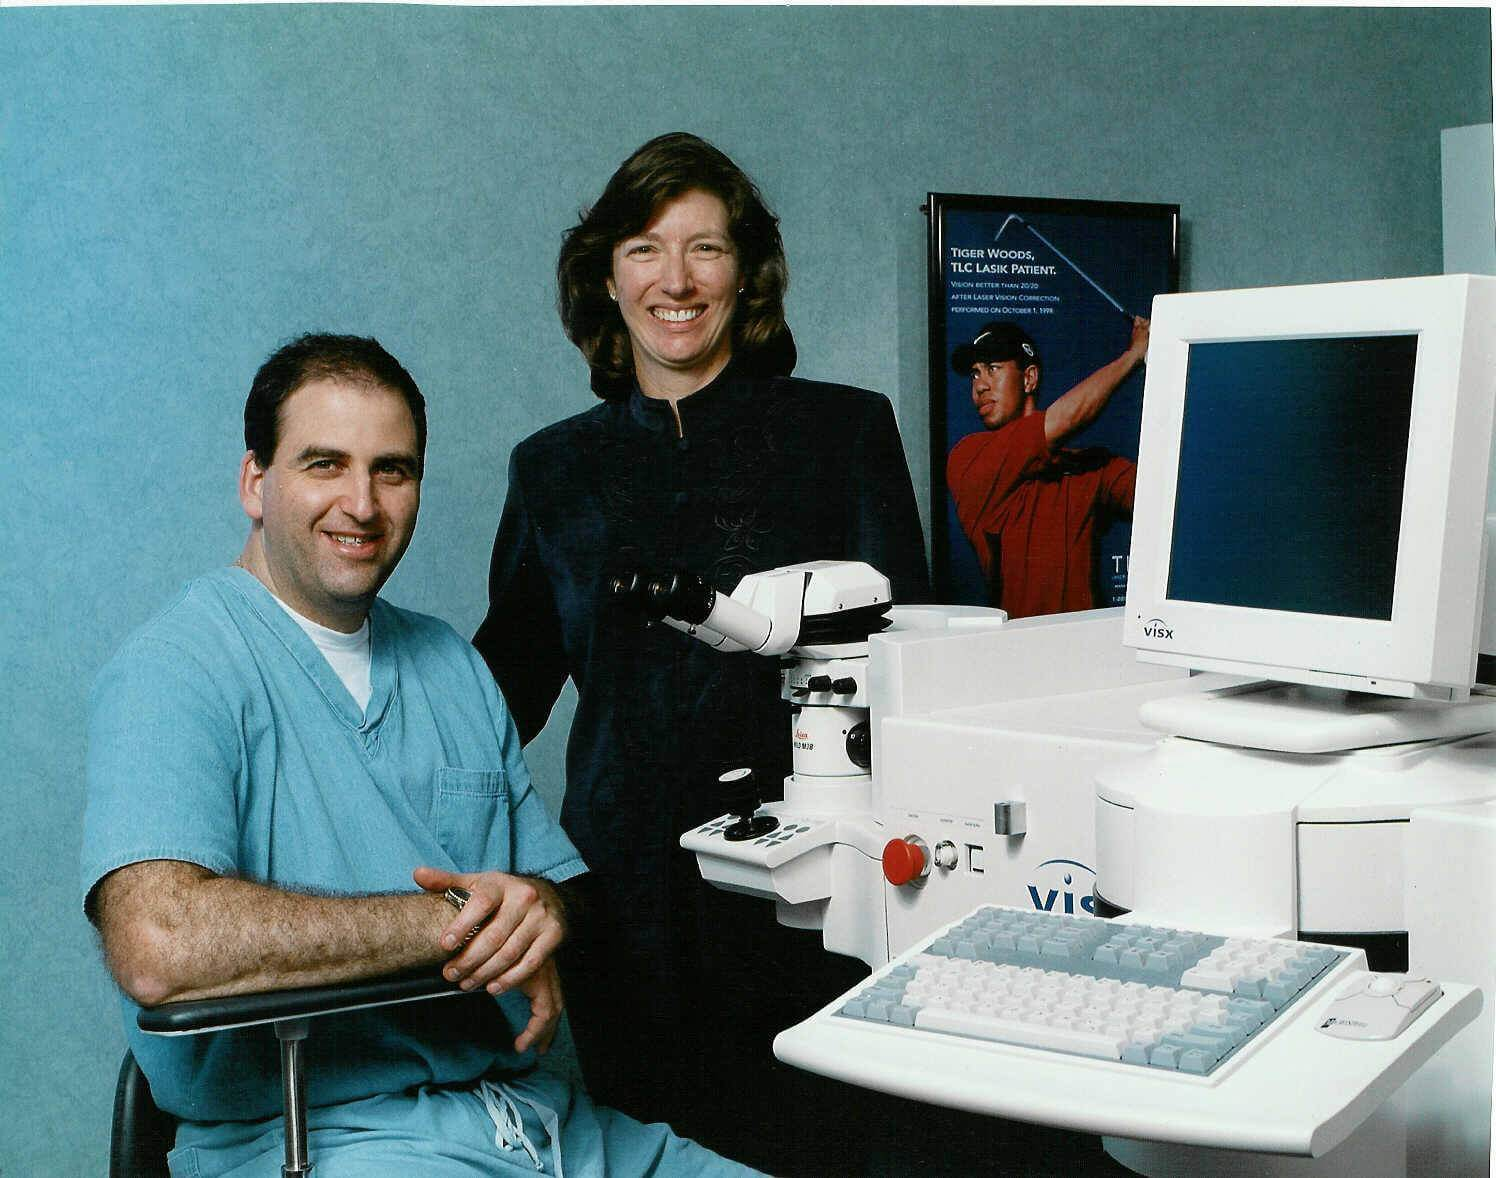 Dr Woolfson and Dr Steck